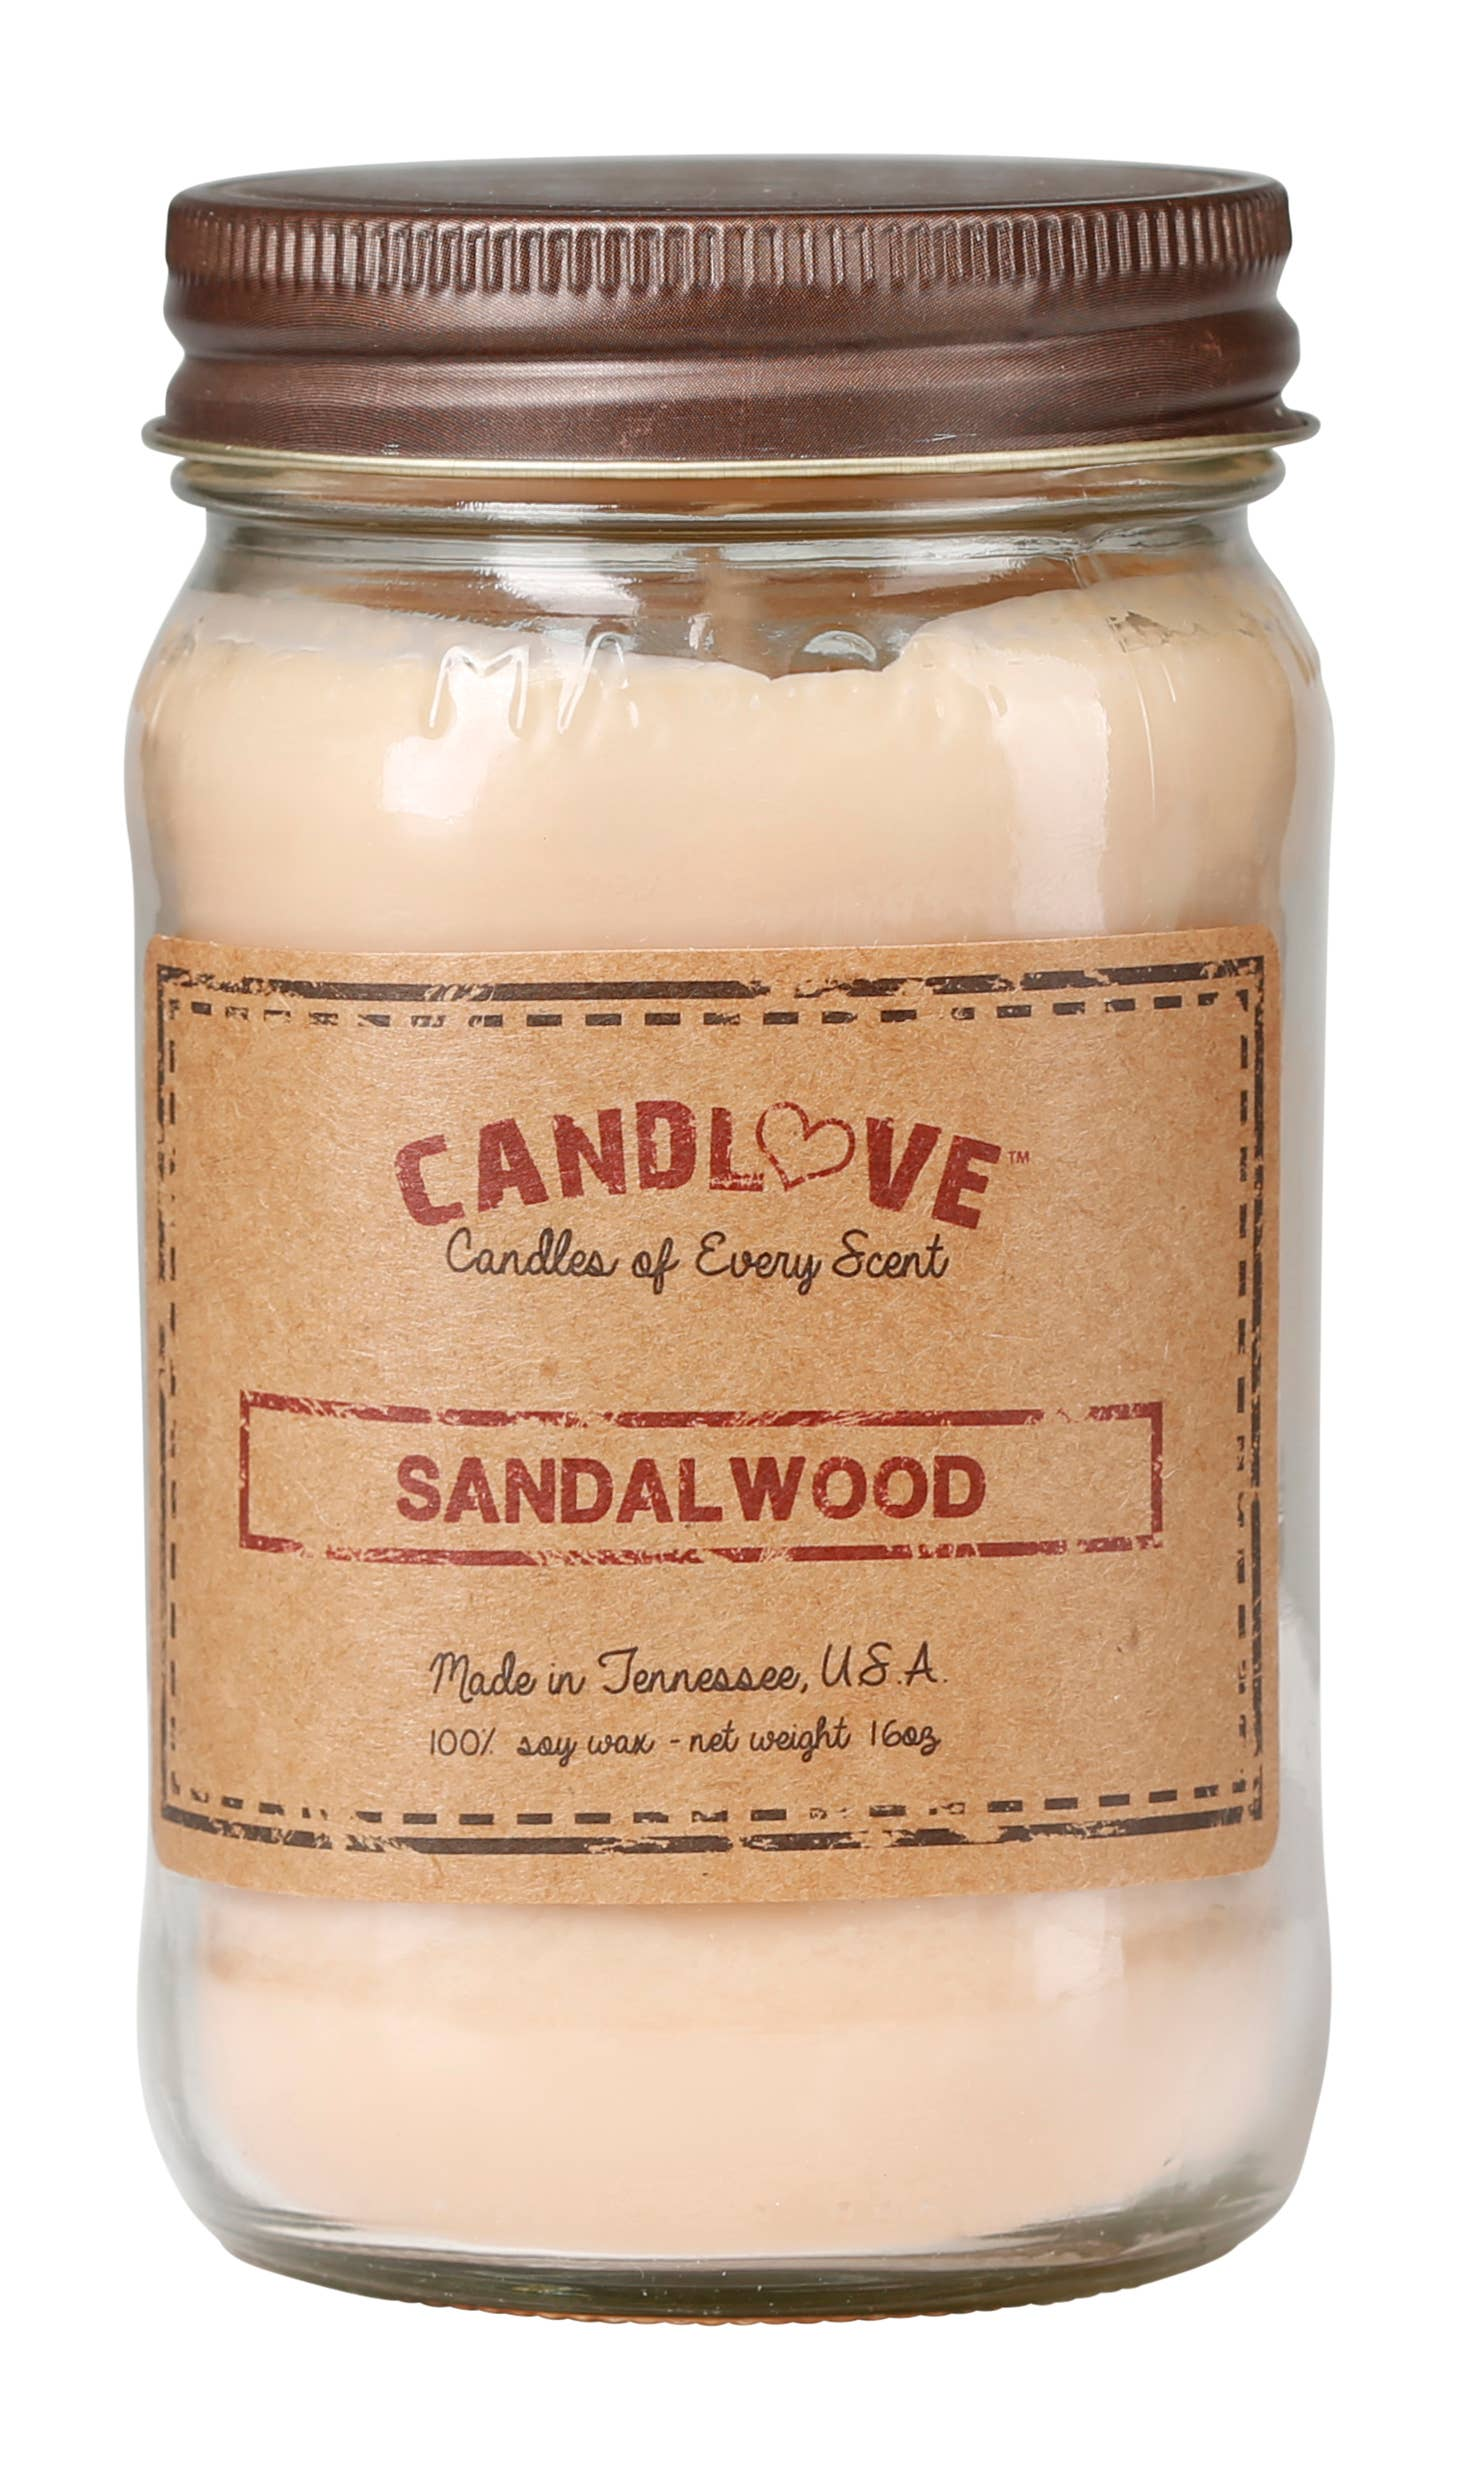 Soy Wax Scented Candle - Sandalwood